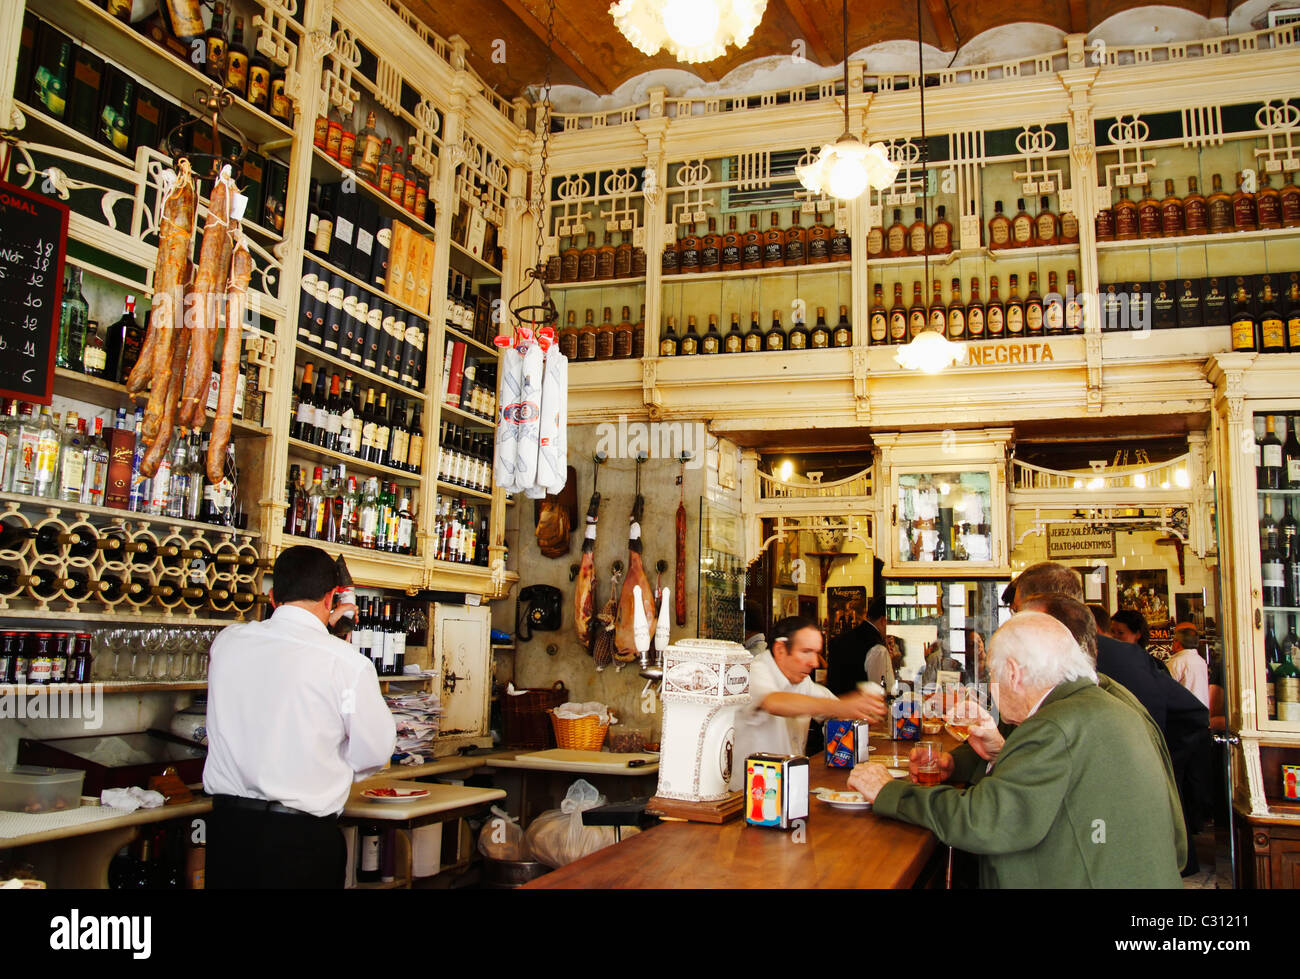 The Famous El Rinconcillo Tapas Bar In Seville Said To Be